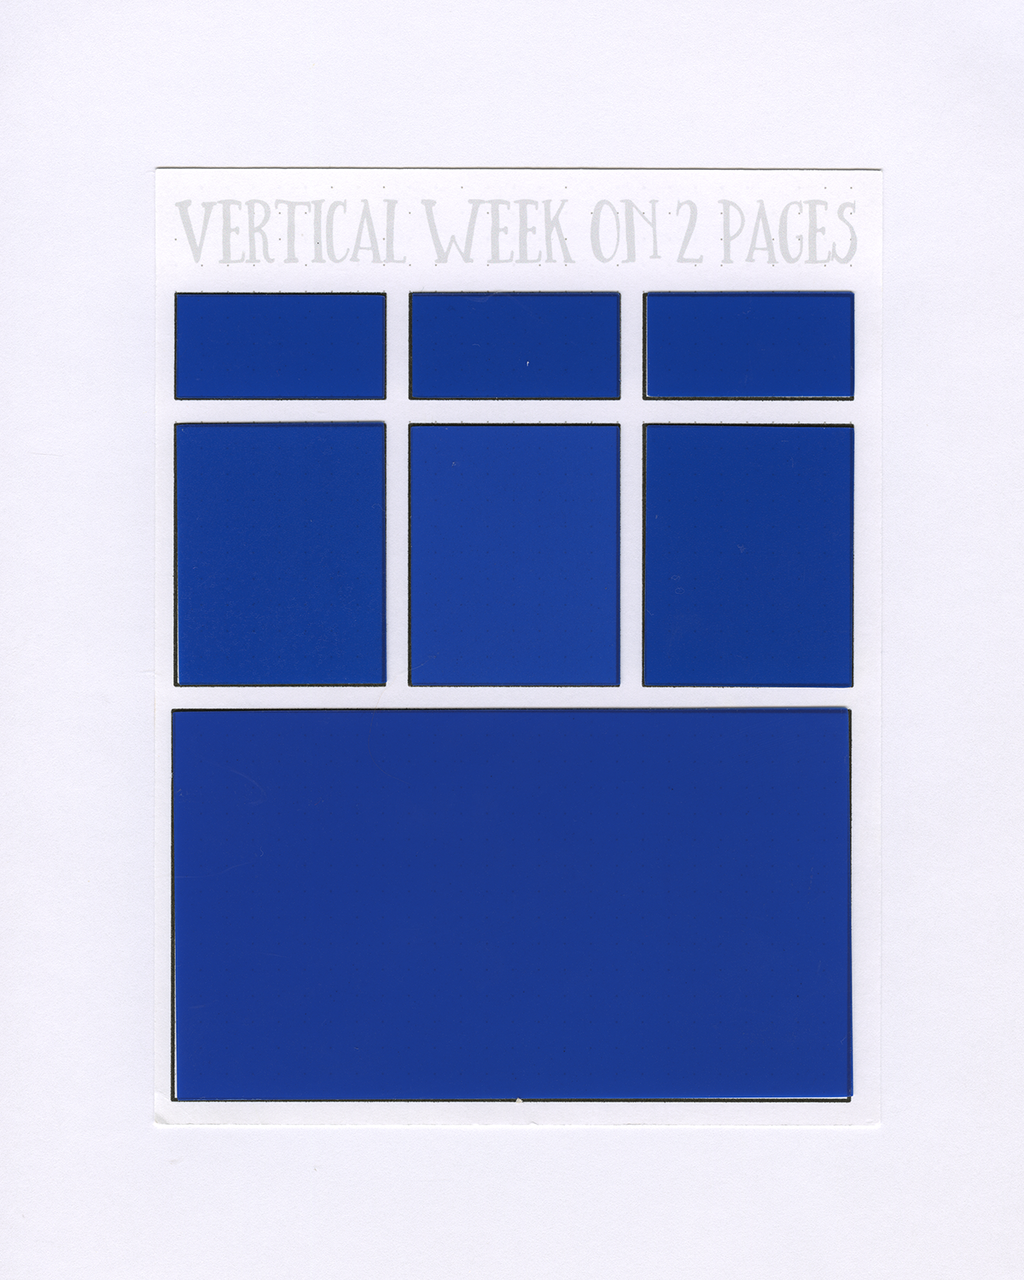 VERTICAL WEEK ON 2 PAGES Stencil Mask